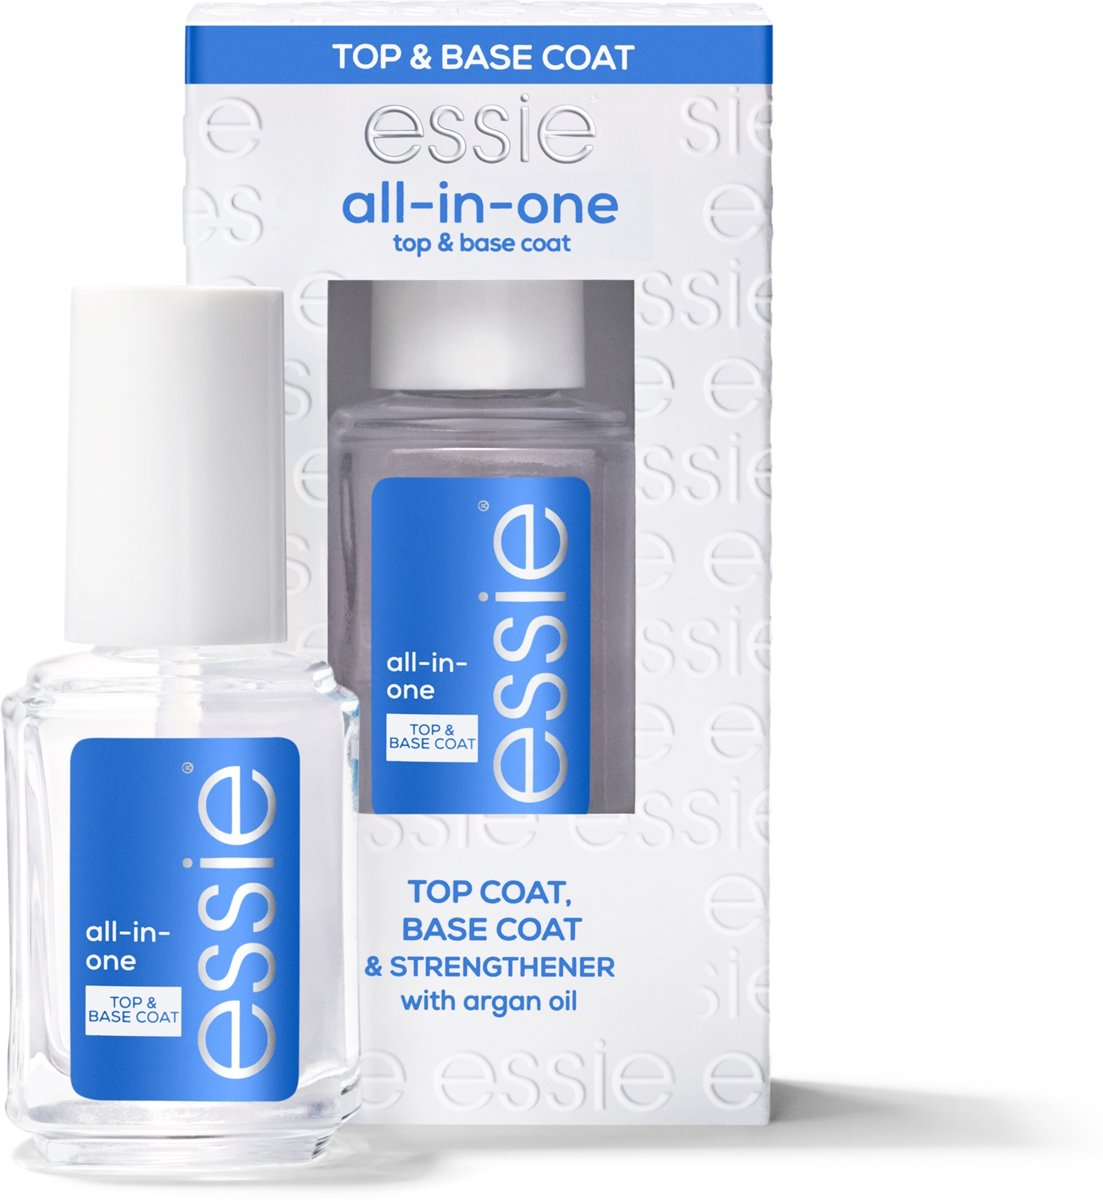 Essie Nagelverzorging - All-in-one base coat en top coat